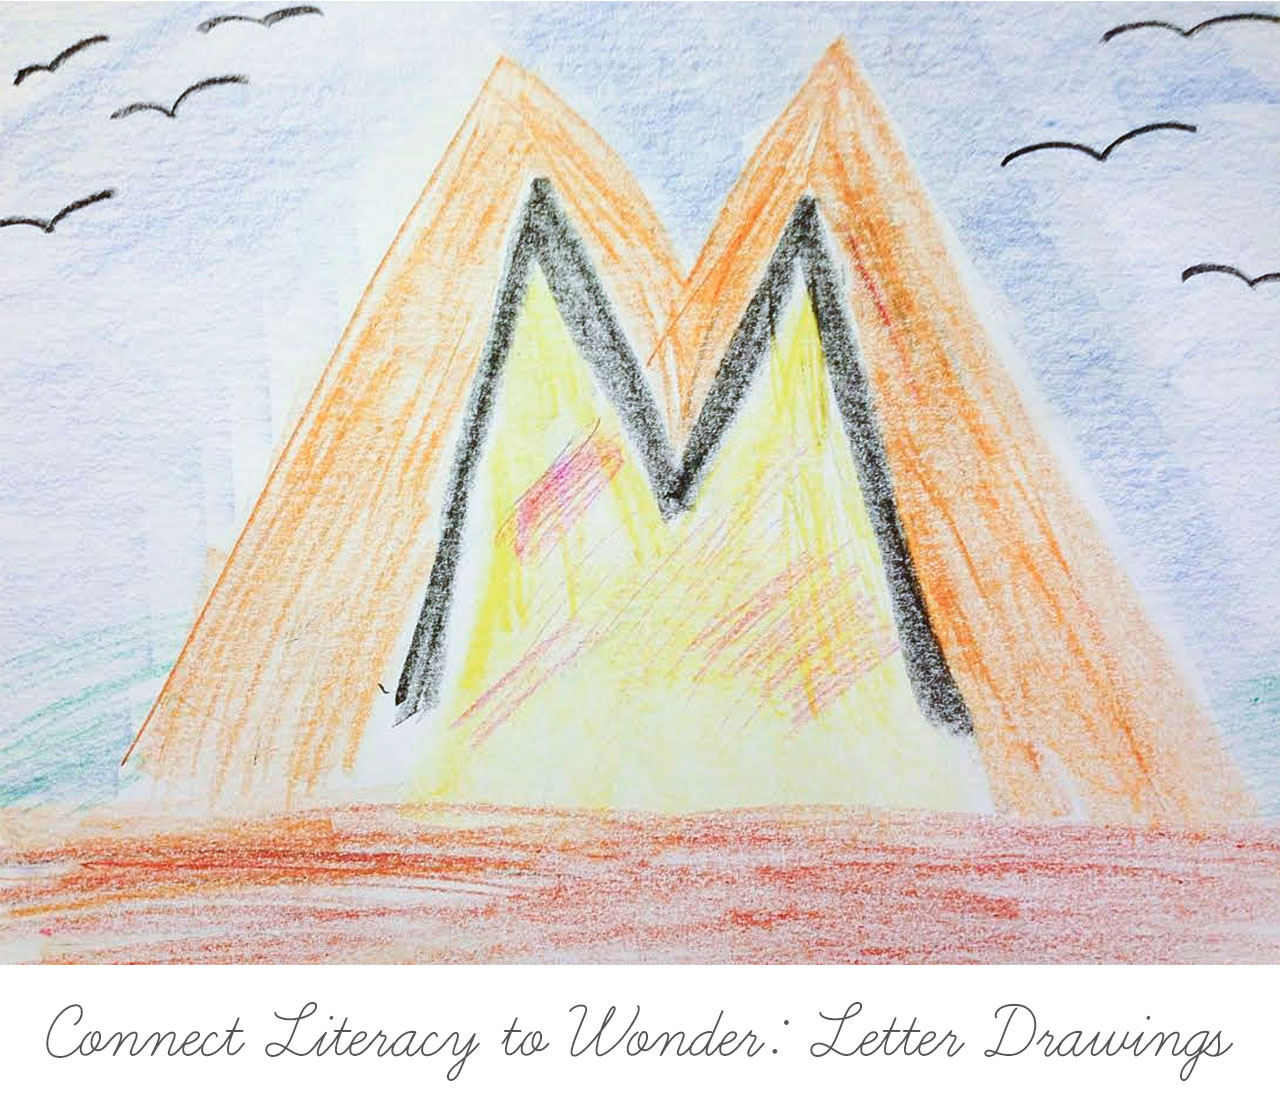 Connect Literacy to Wonder: Letter Drawings